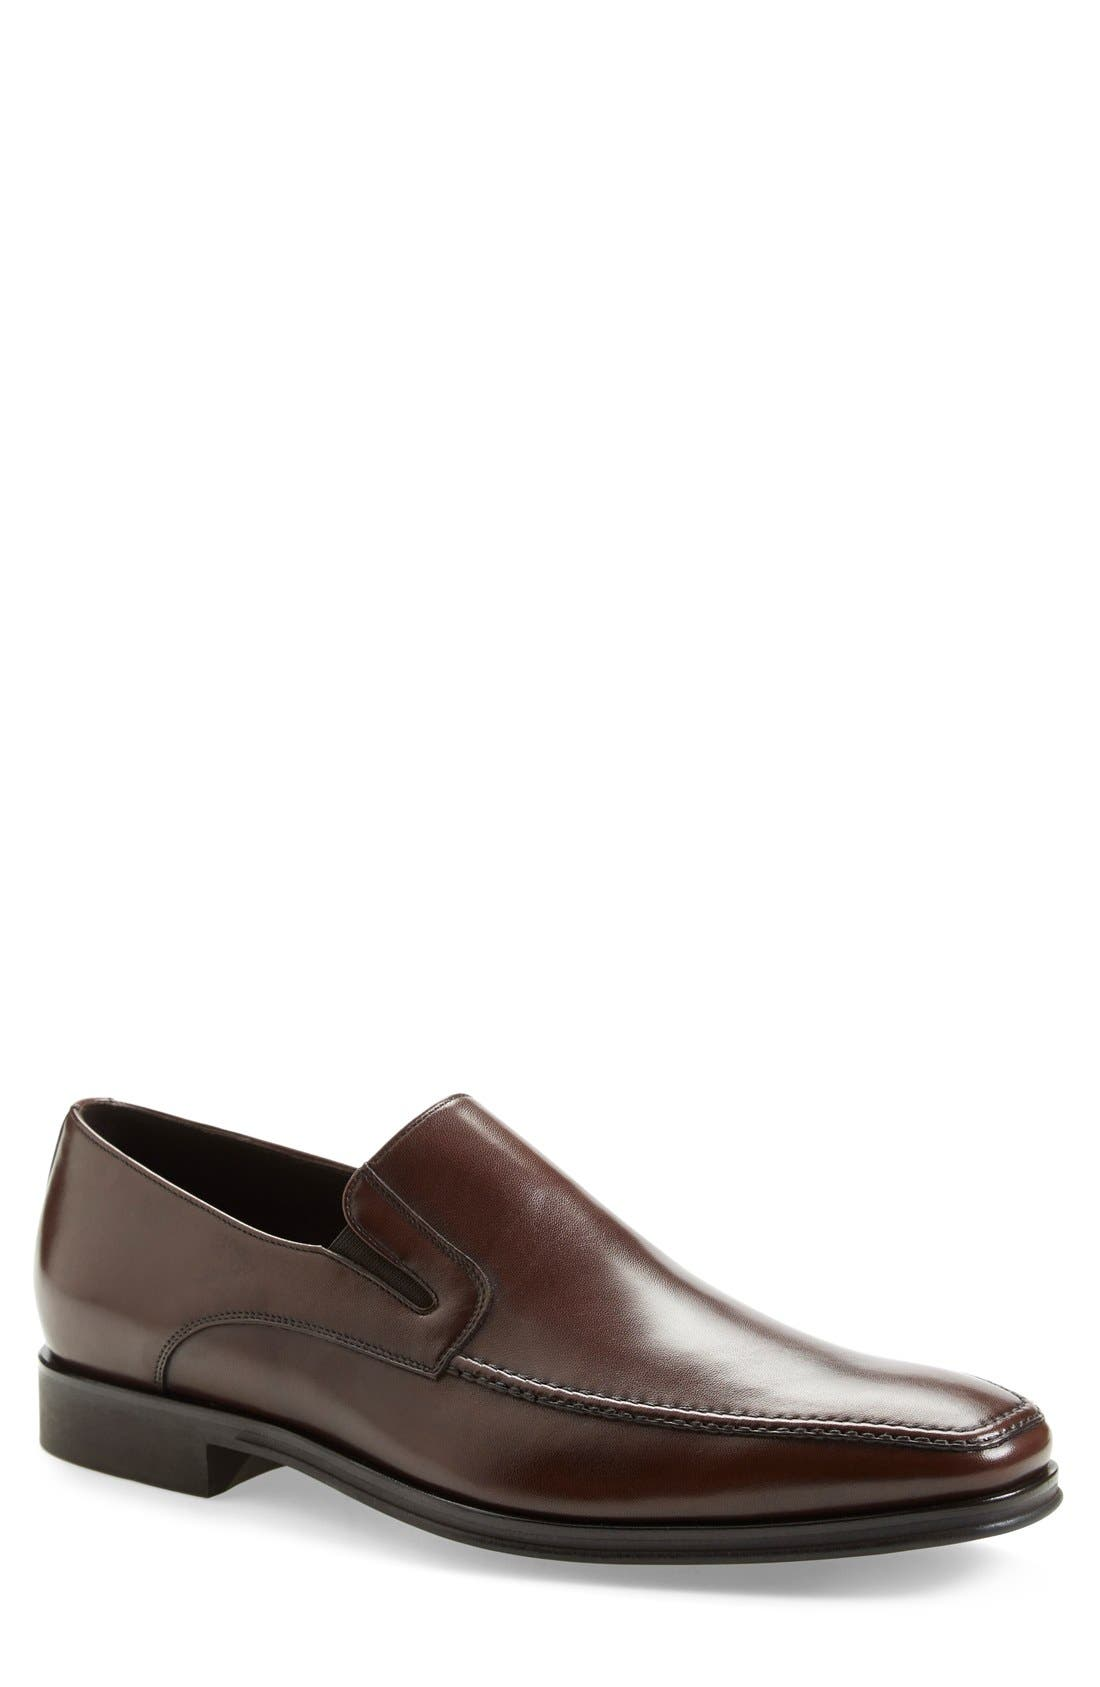 Lucca Nappa Leather Loafer,                         Main,                         color, BROWN